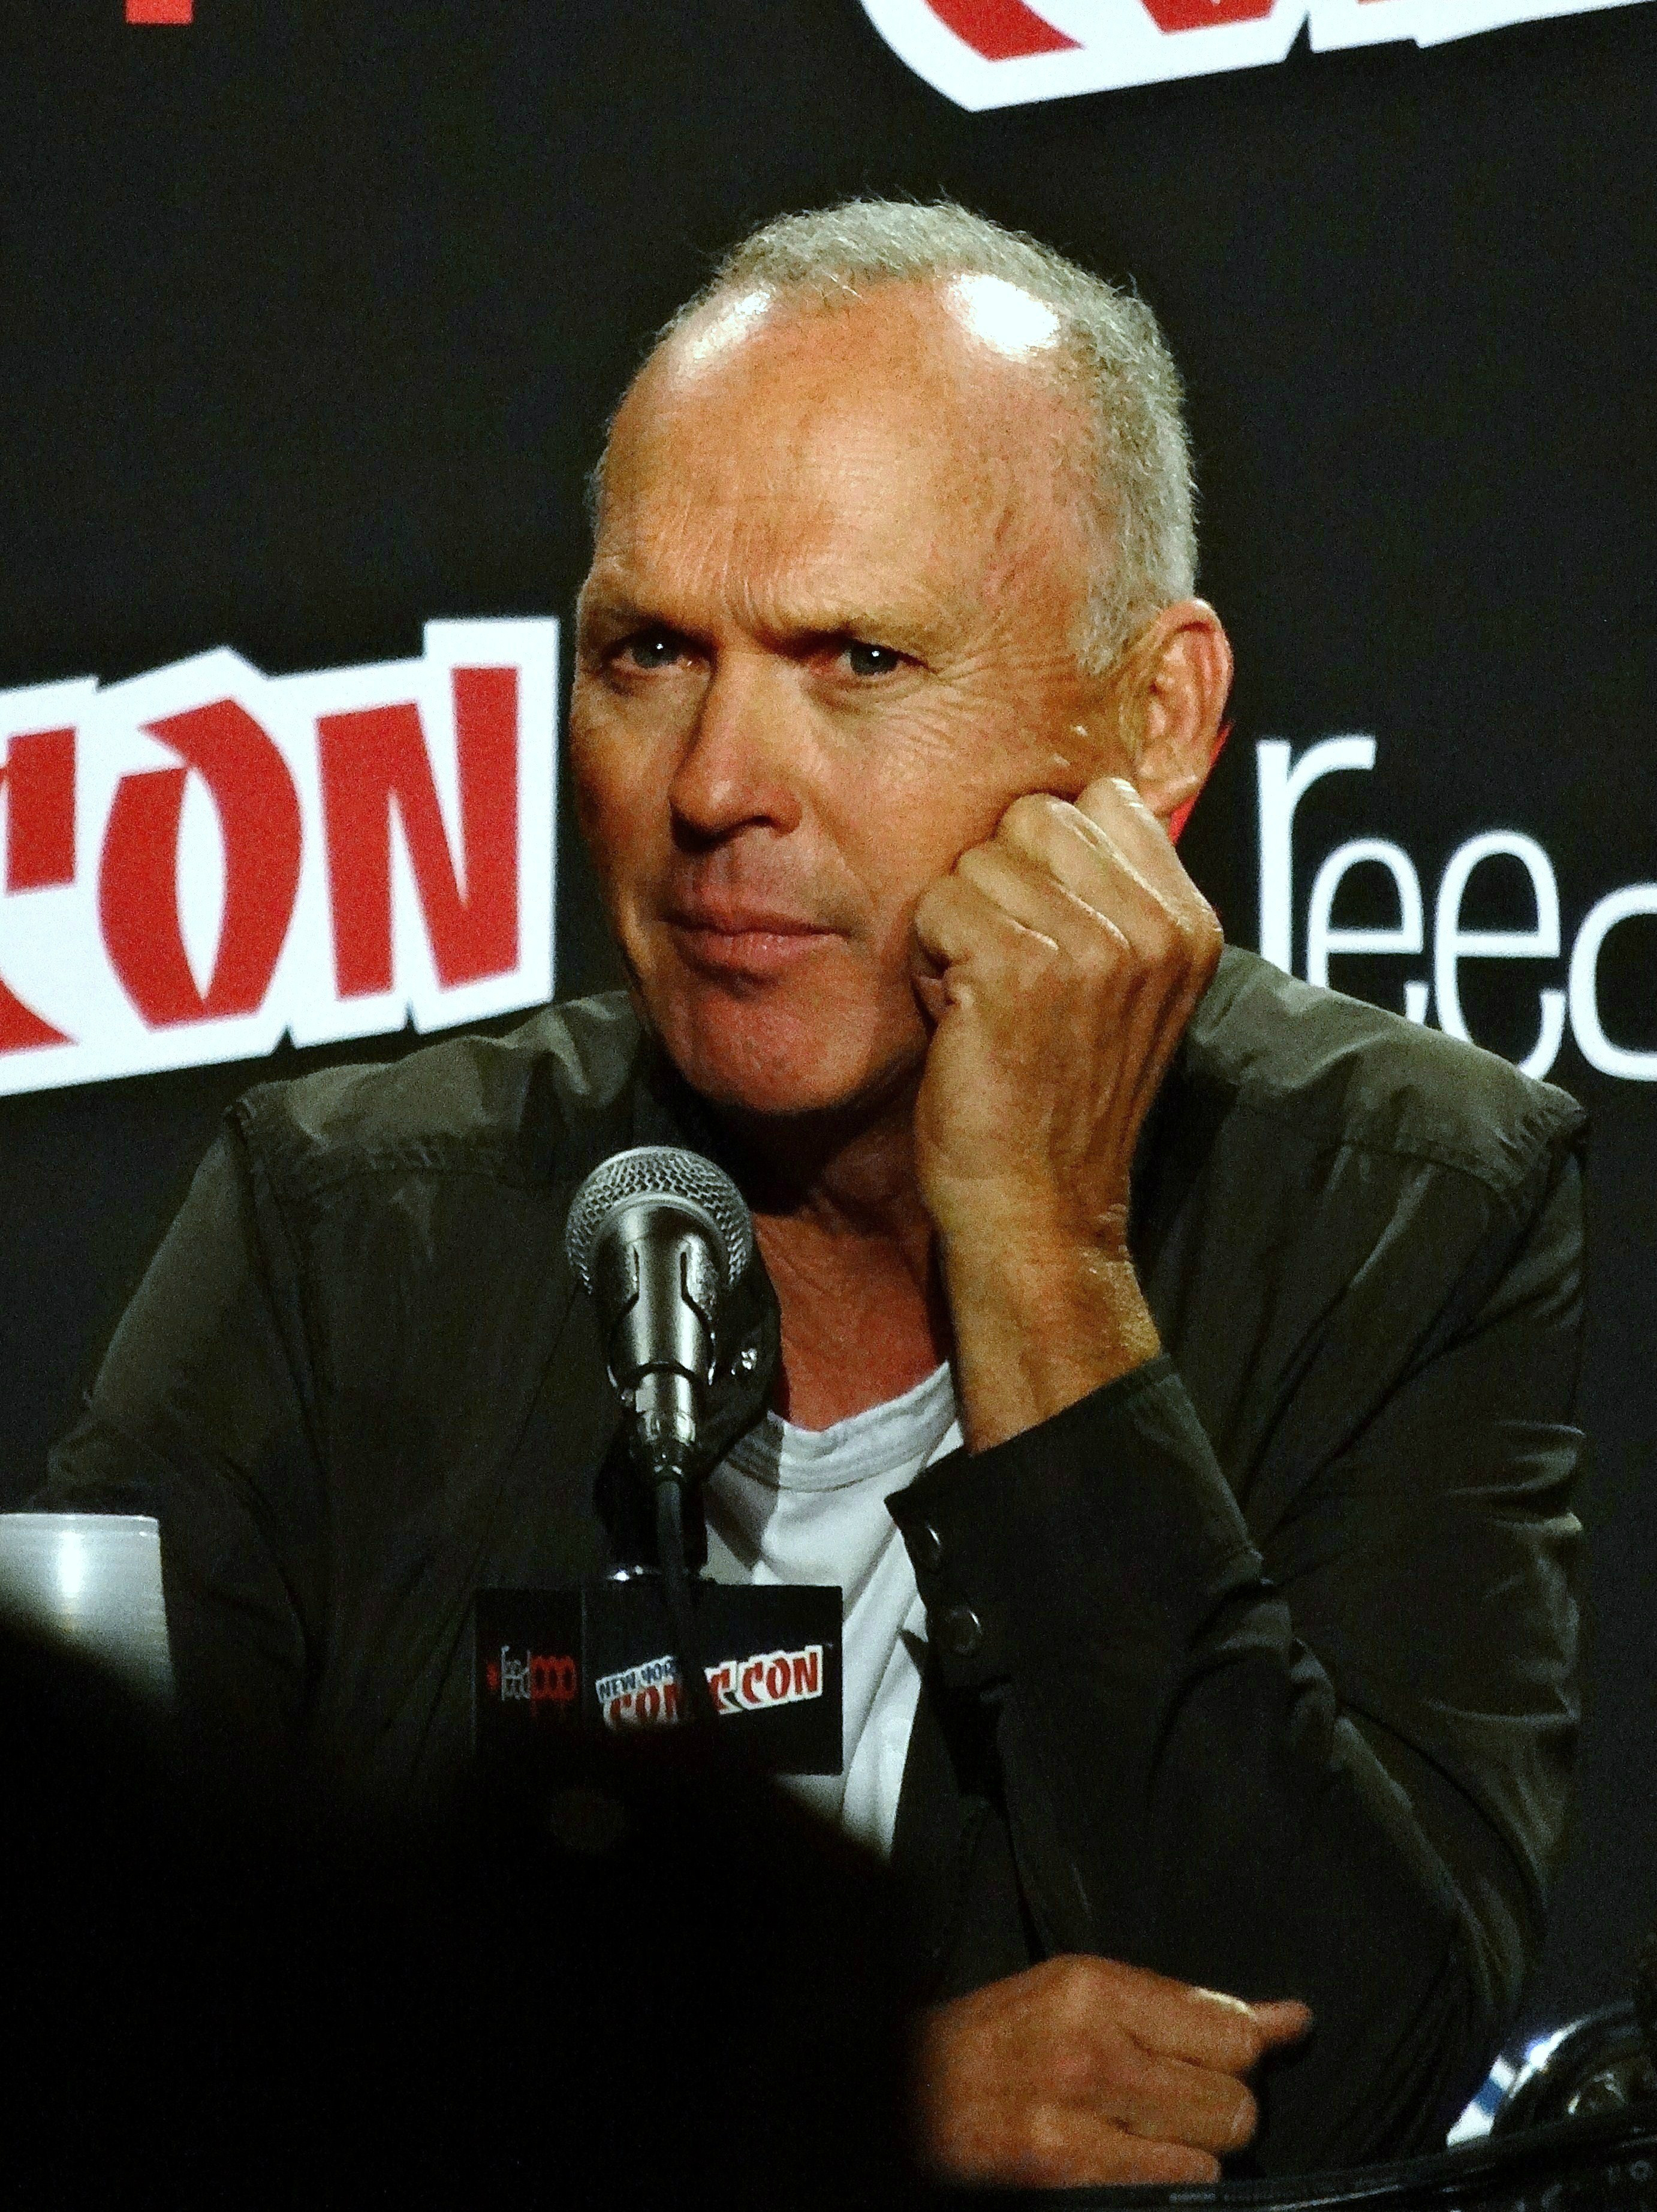 The 67-year old son of father George A. Douglas and mother Leona Elizabeth Michael Keaton in 2019 photo. Michael Keaton earned a  million dollar salary - leaving the net worth at 15 million in 2019